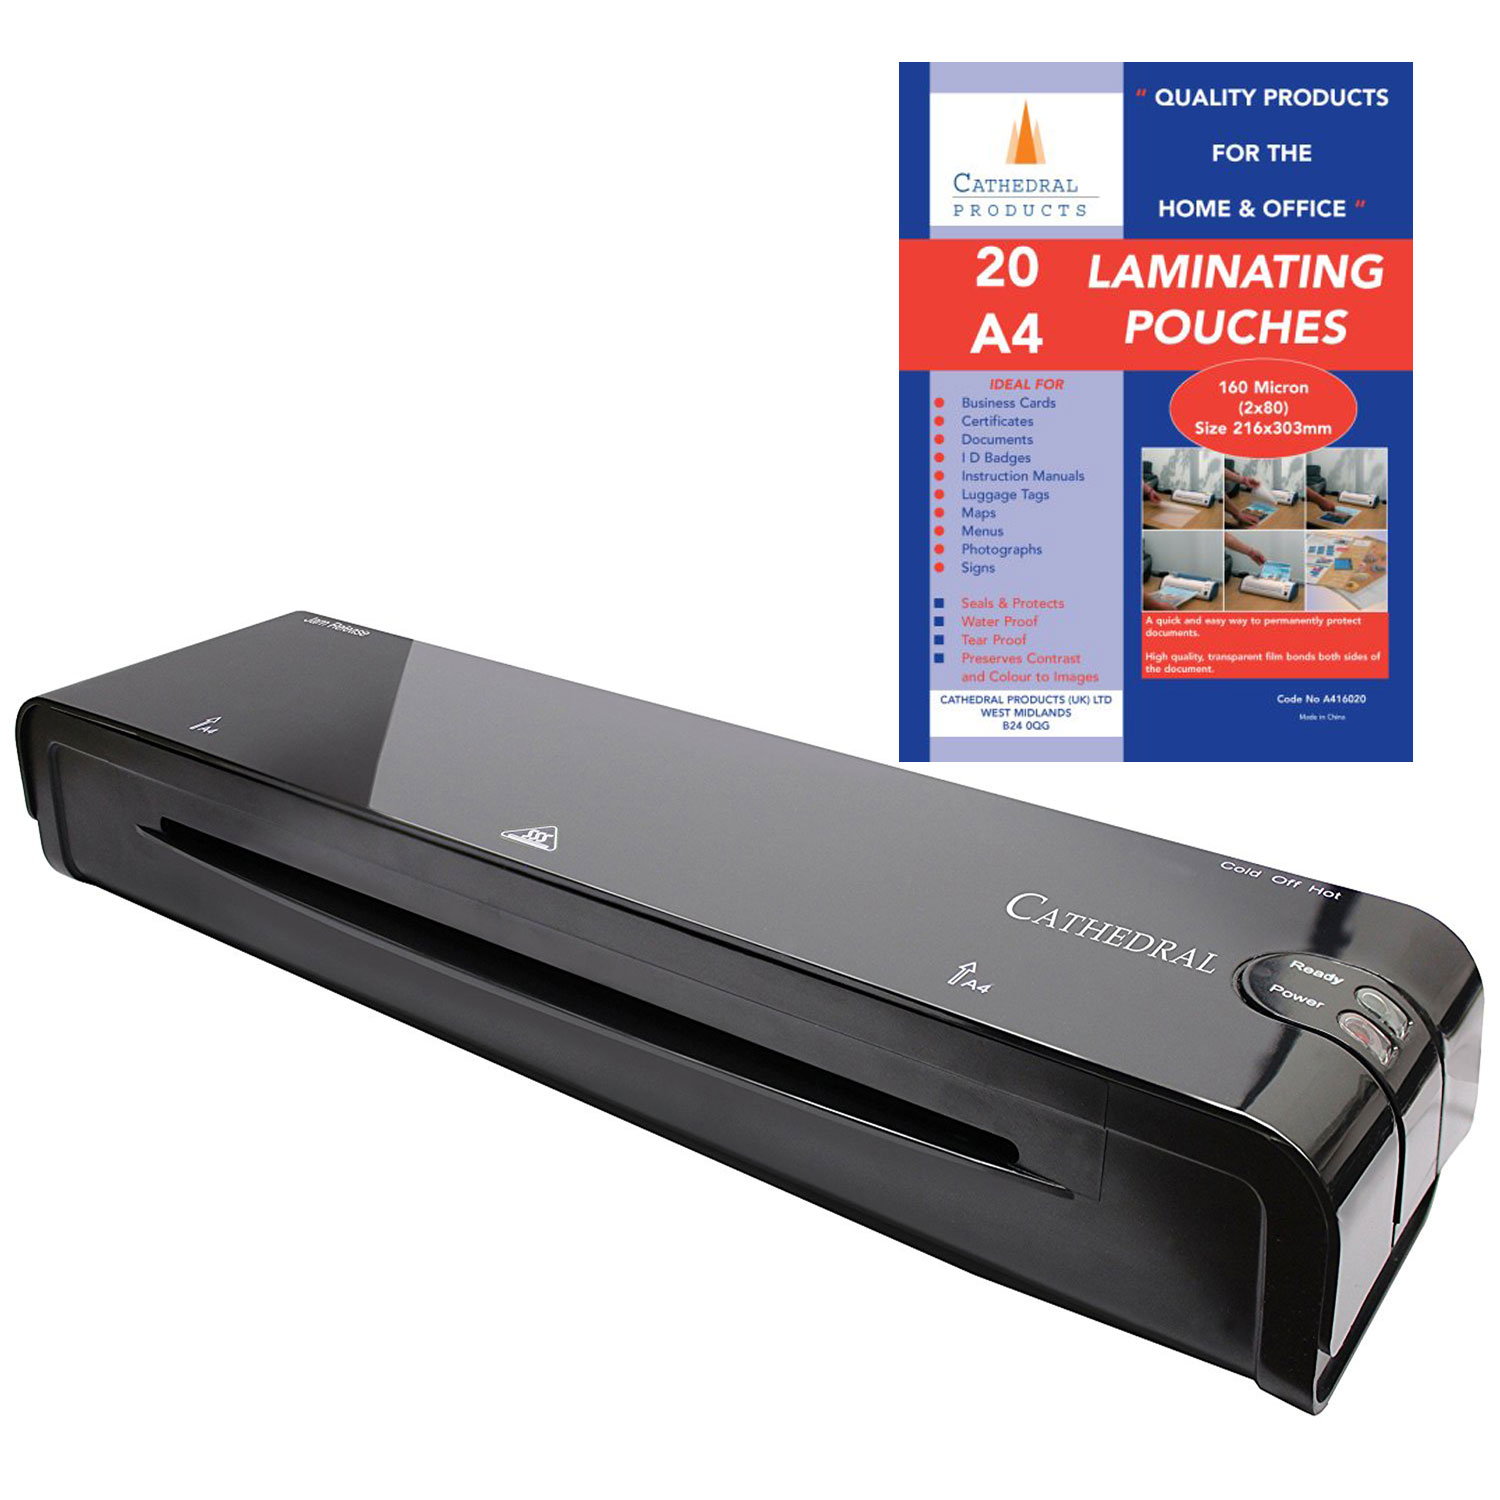 Cathedral LM400 A4 Laminating Machine Black